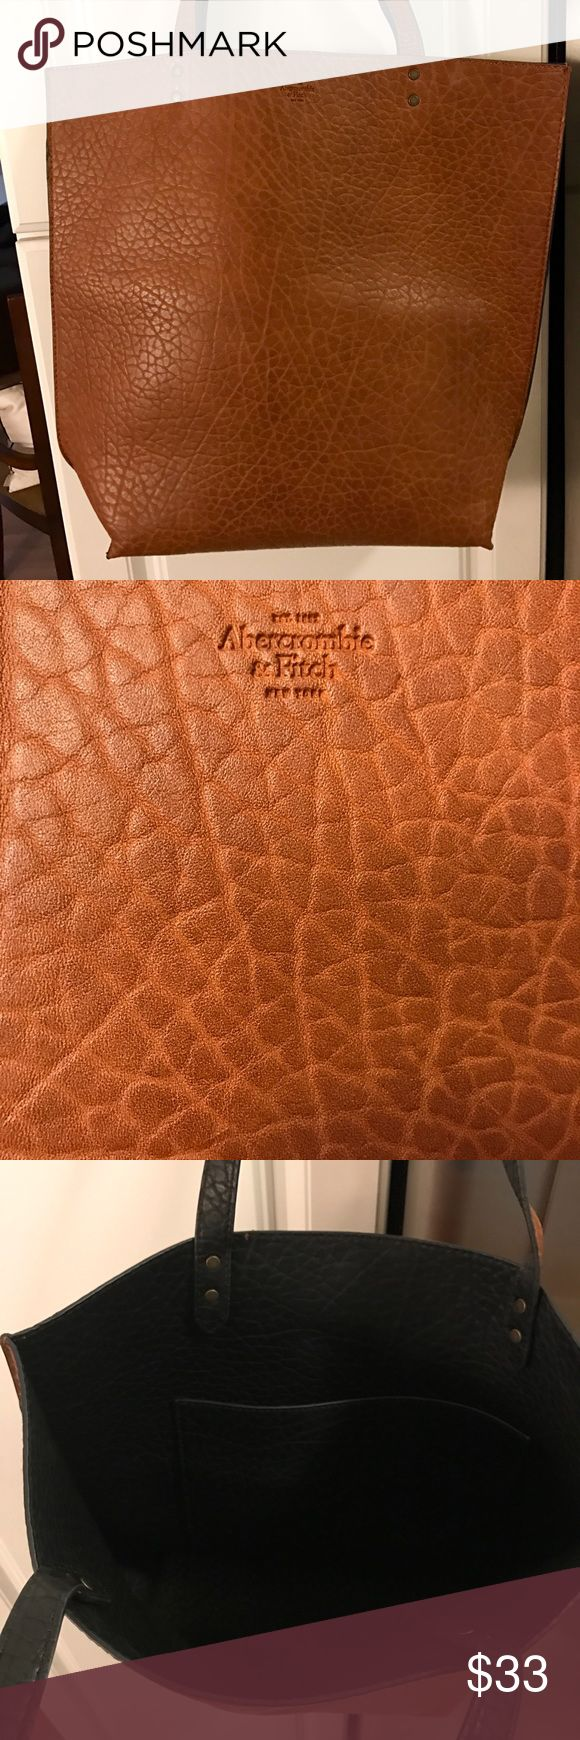 Abercrombie & Fitch Camel Tote Perfect as an everyday bag! Beautiful camel color tote, sturdy enough for iPad, laptop or some books. ✨ no wear. Only used once. Inside has a small side compartment. 🌺 Abercrombie & Fitch Bags Totes